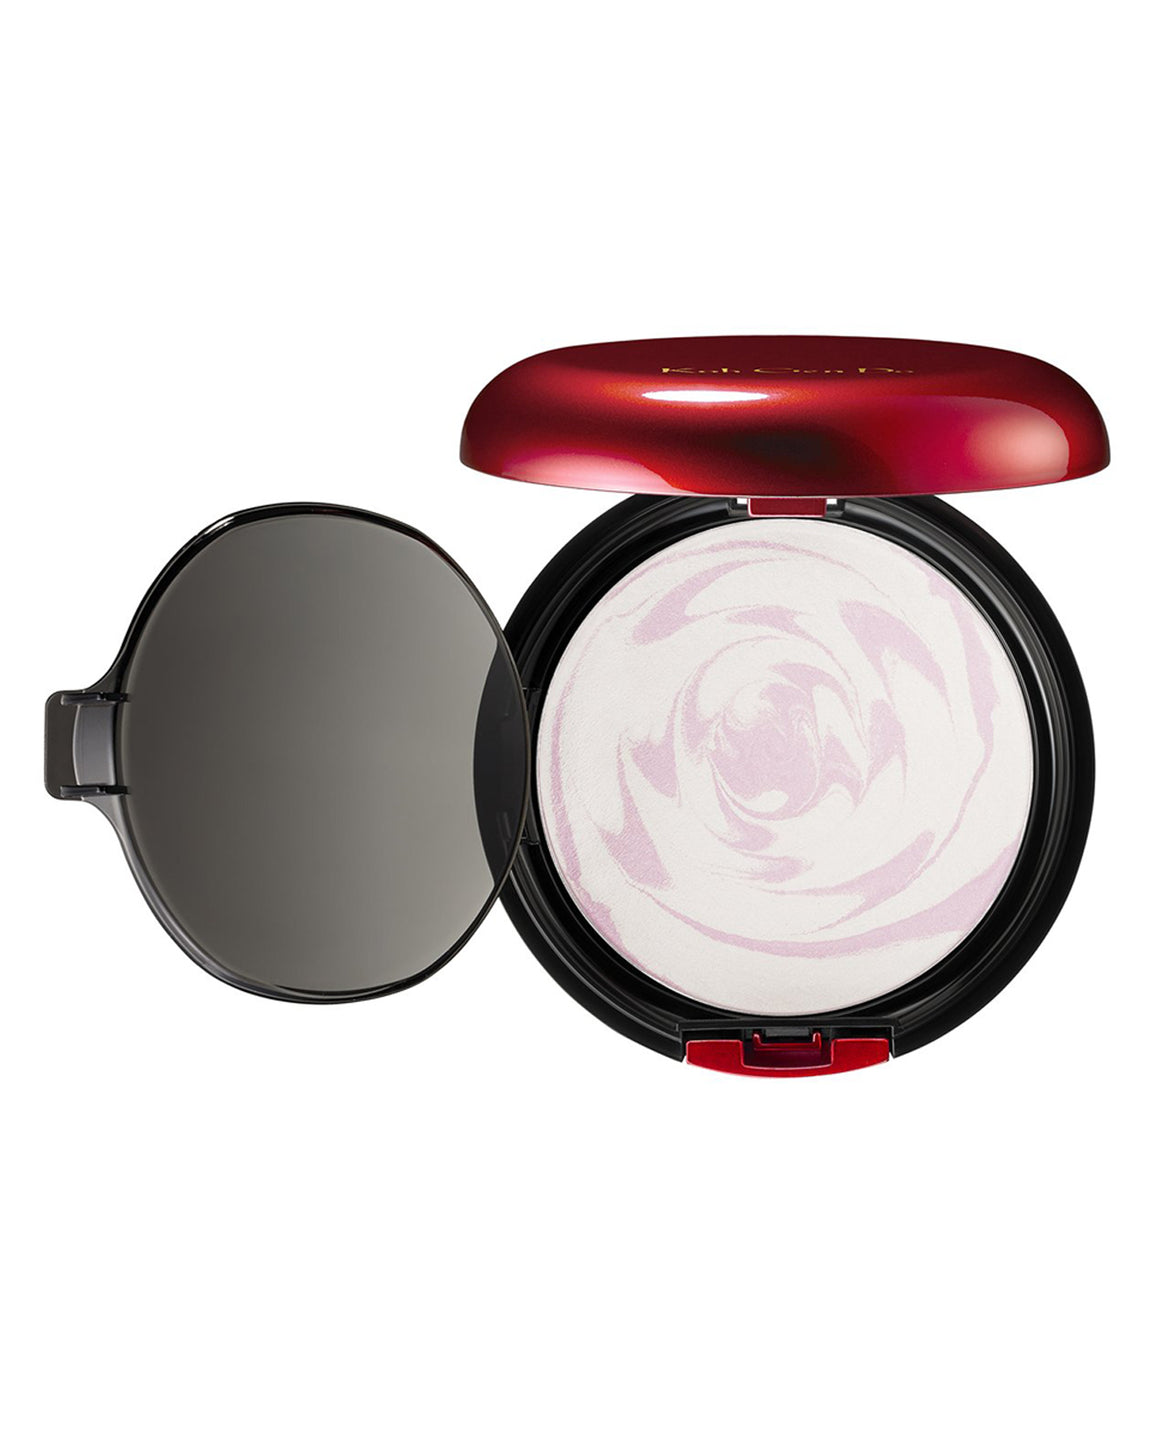 NEW Maifanshi Brightening Moisture Powder - Brightening Pink